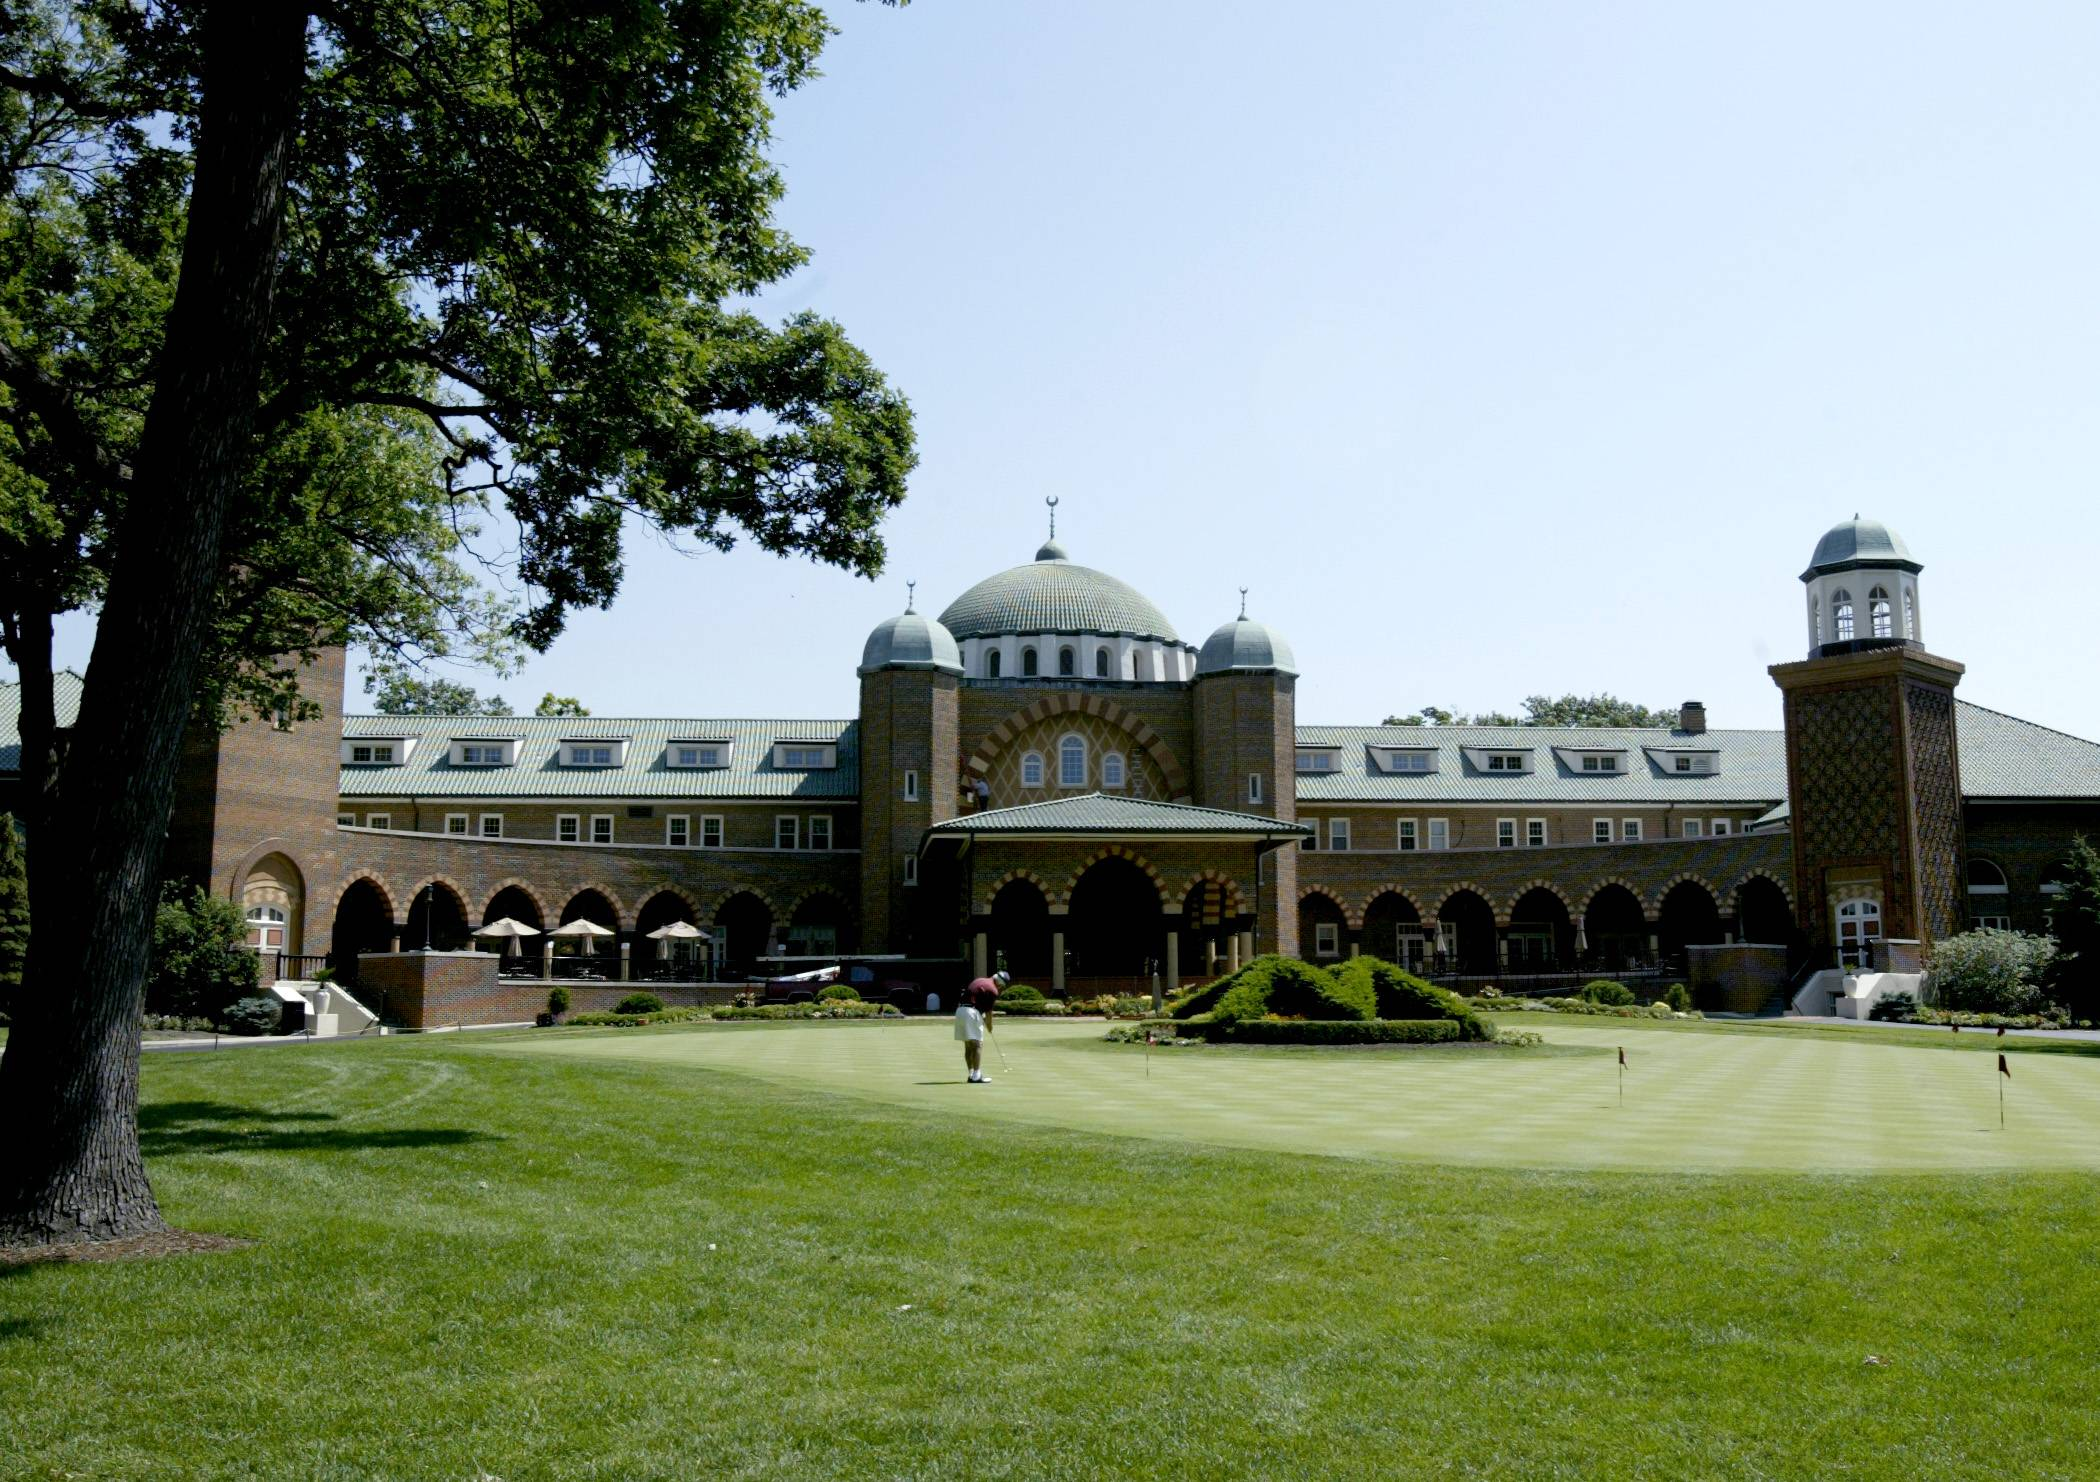 Officials from Medinah Country Club and the 17 government agencies that receive property tax revenue from the exclusive golf course have settled a dispute over tax bills that could cost neighboring property owners more in coming years.